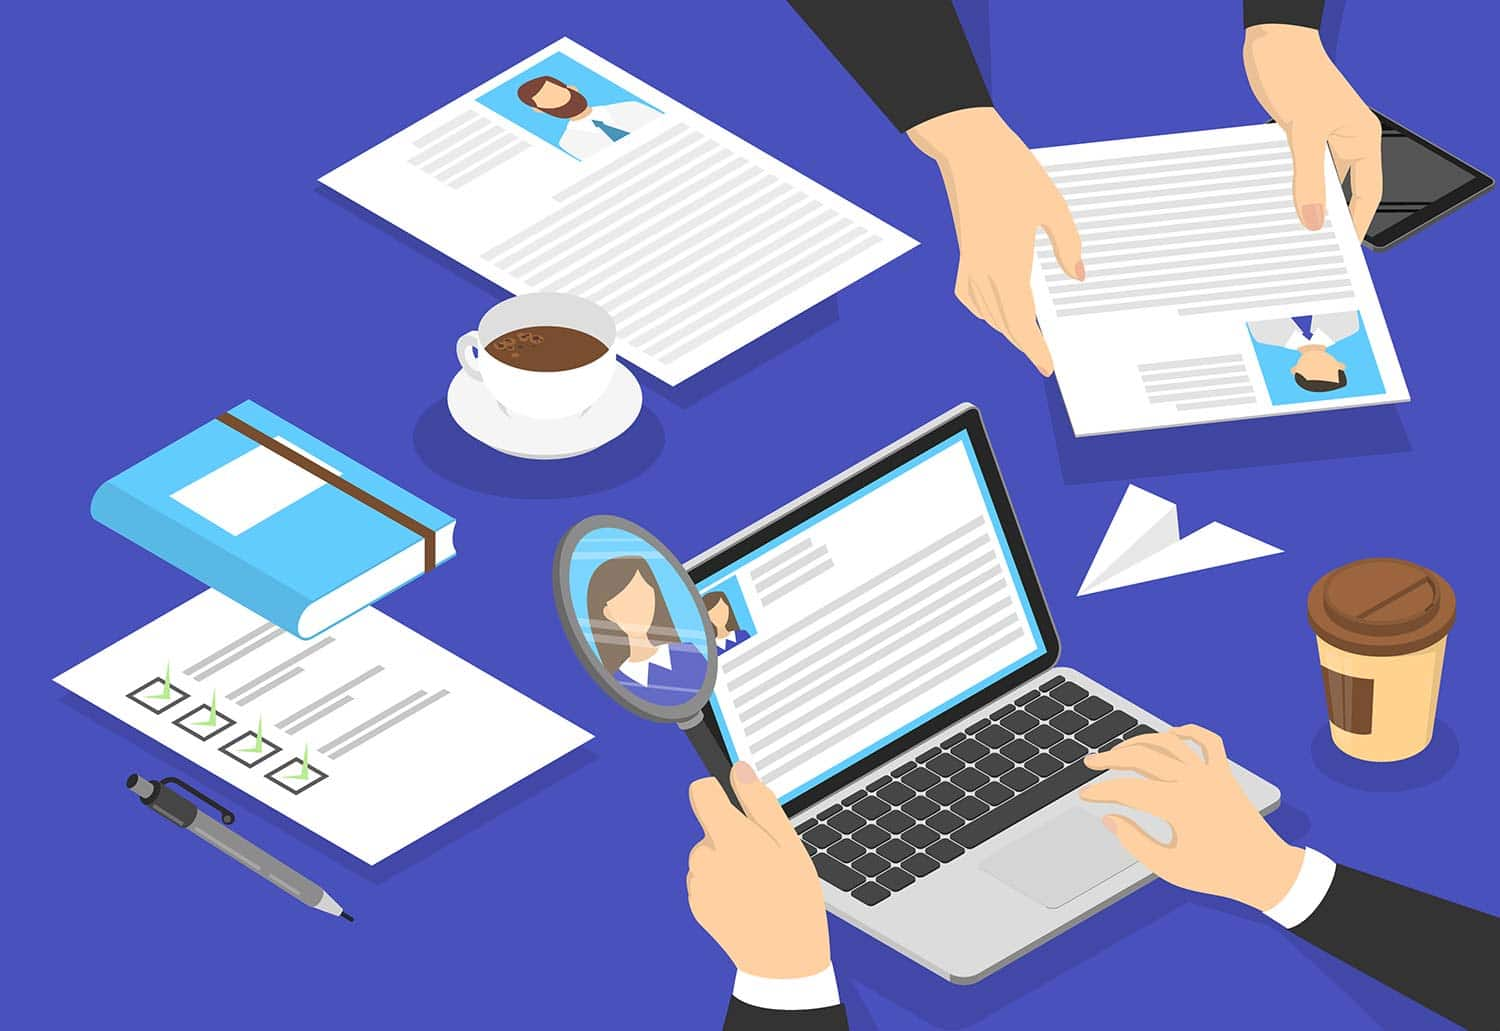 Improve the Way You Write Essential Employee Letters